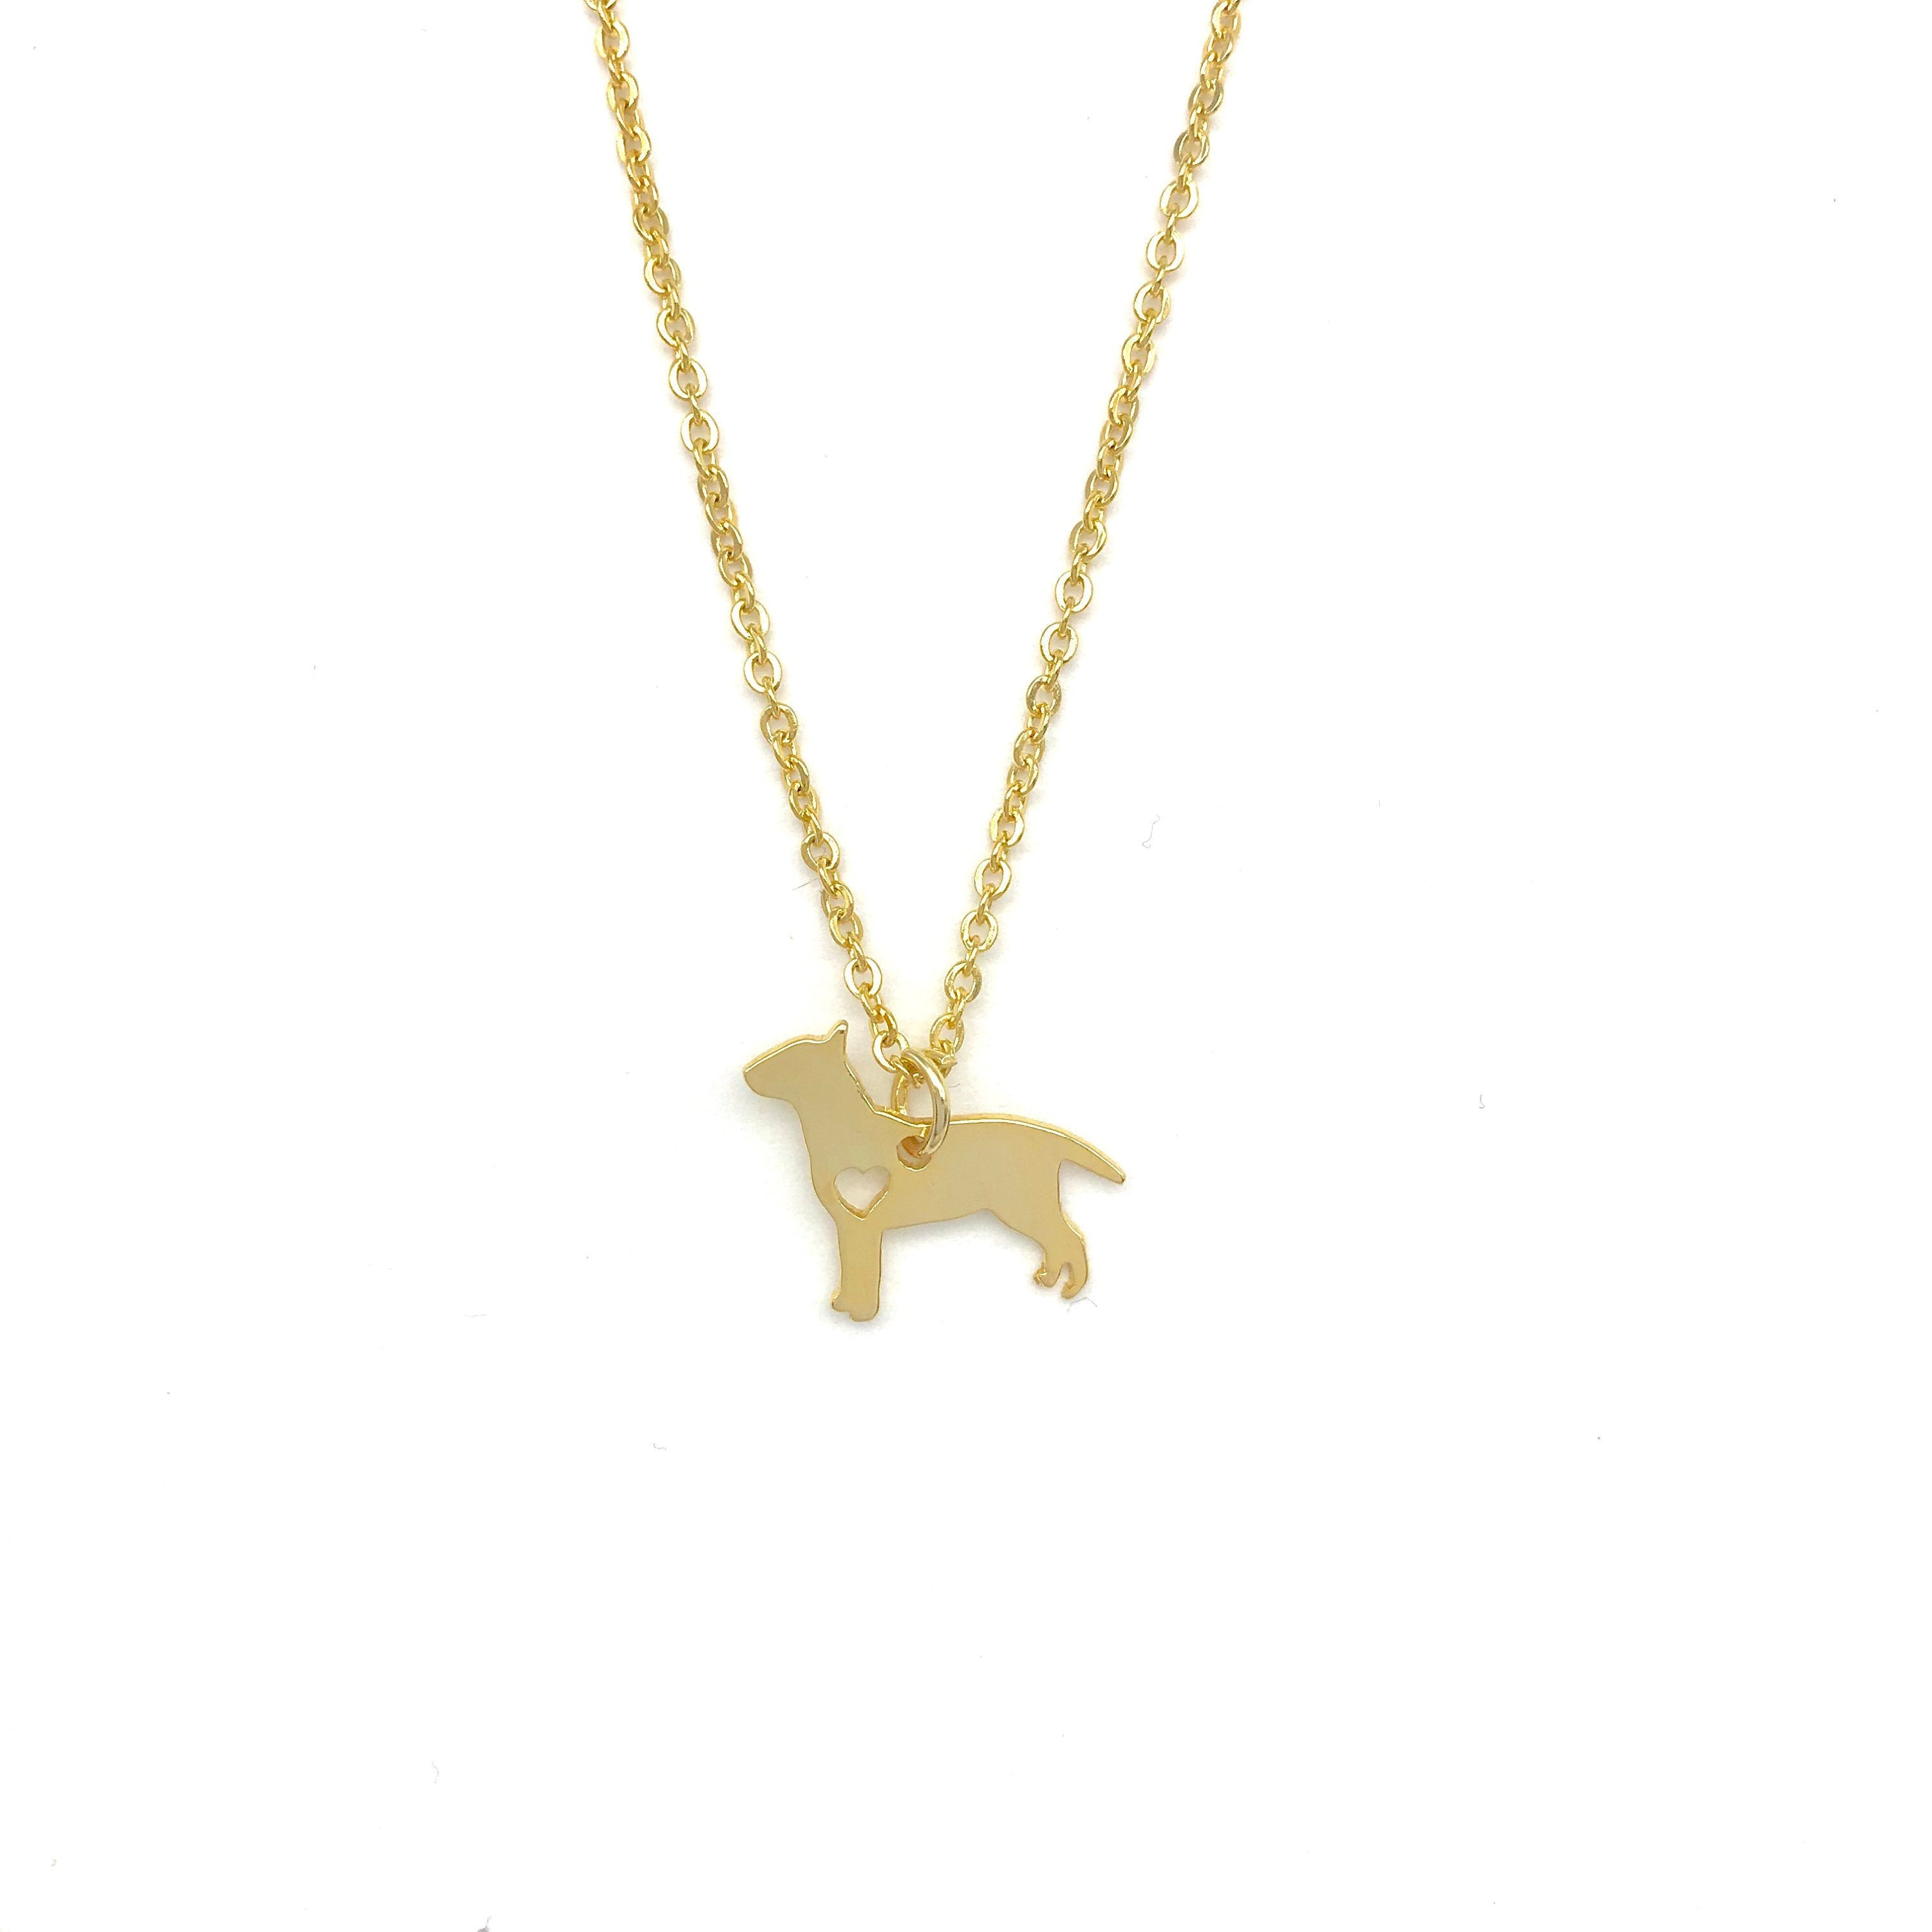 BULL TERRIER NECKLACES